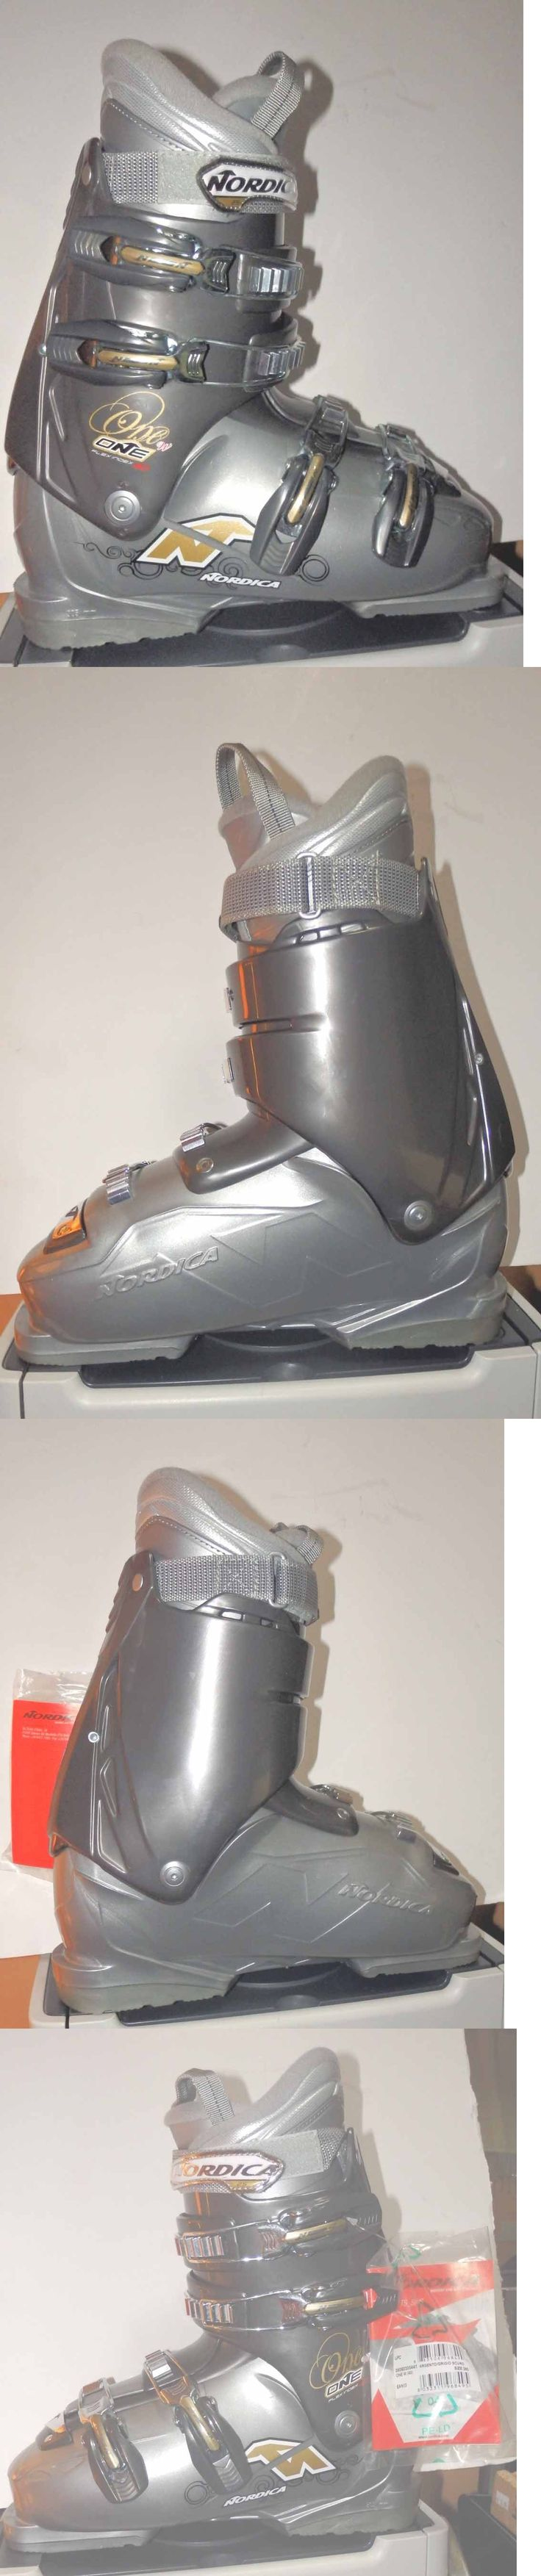 Women 21241: Nordica One W Downhill Ski Boots White -- Mondo 26.5 / Us 9.5 Womens BUY IT NOW ONLY: $99.95